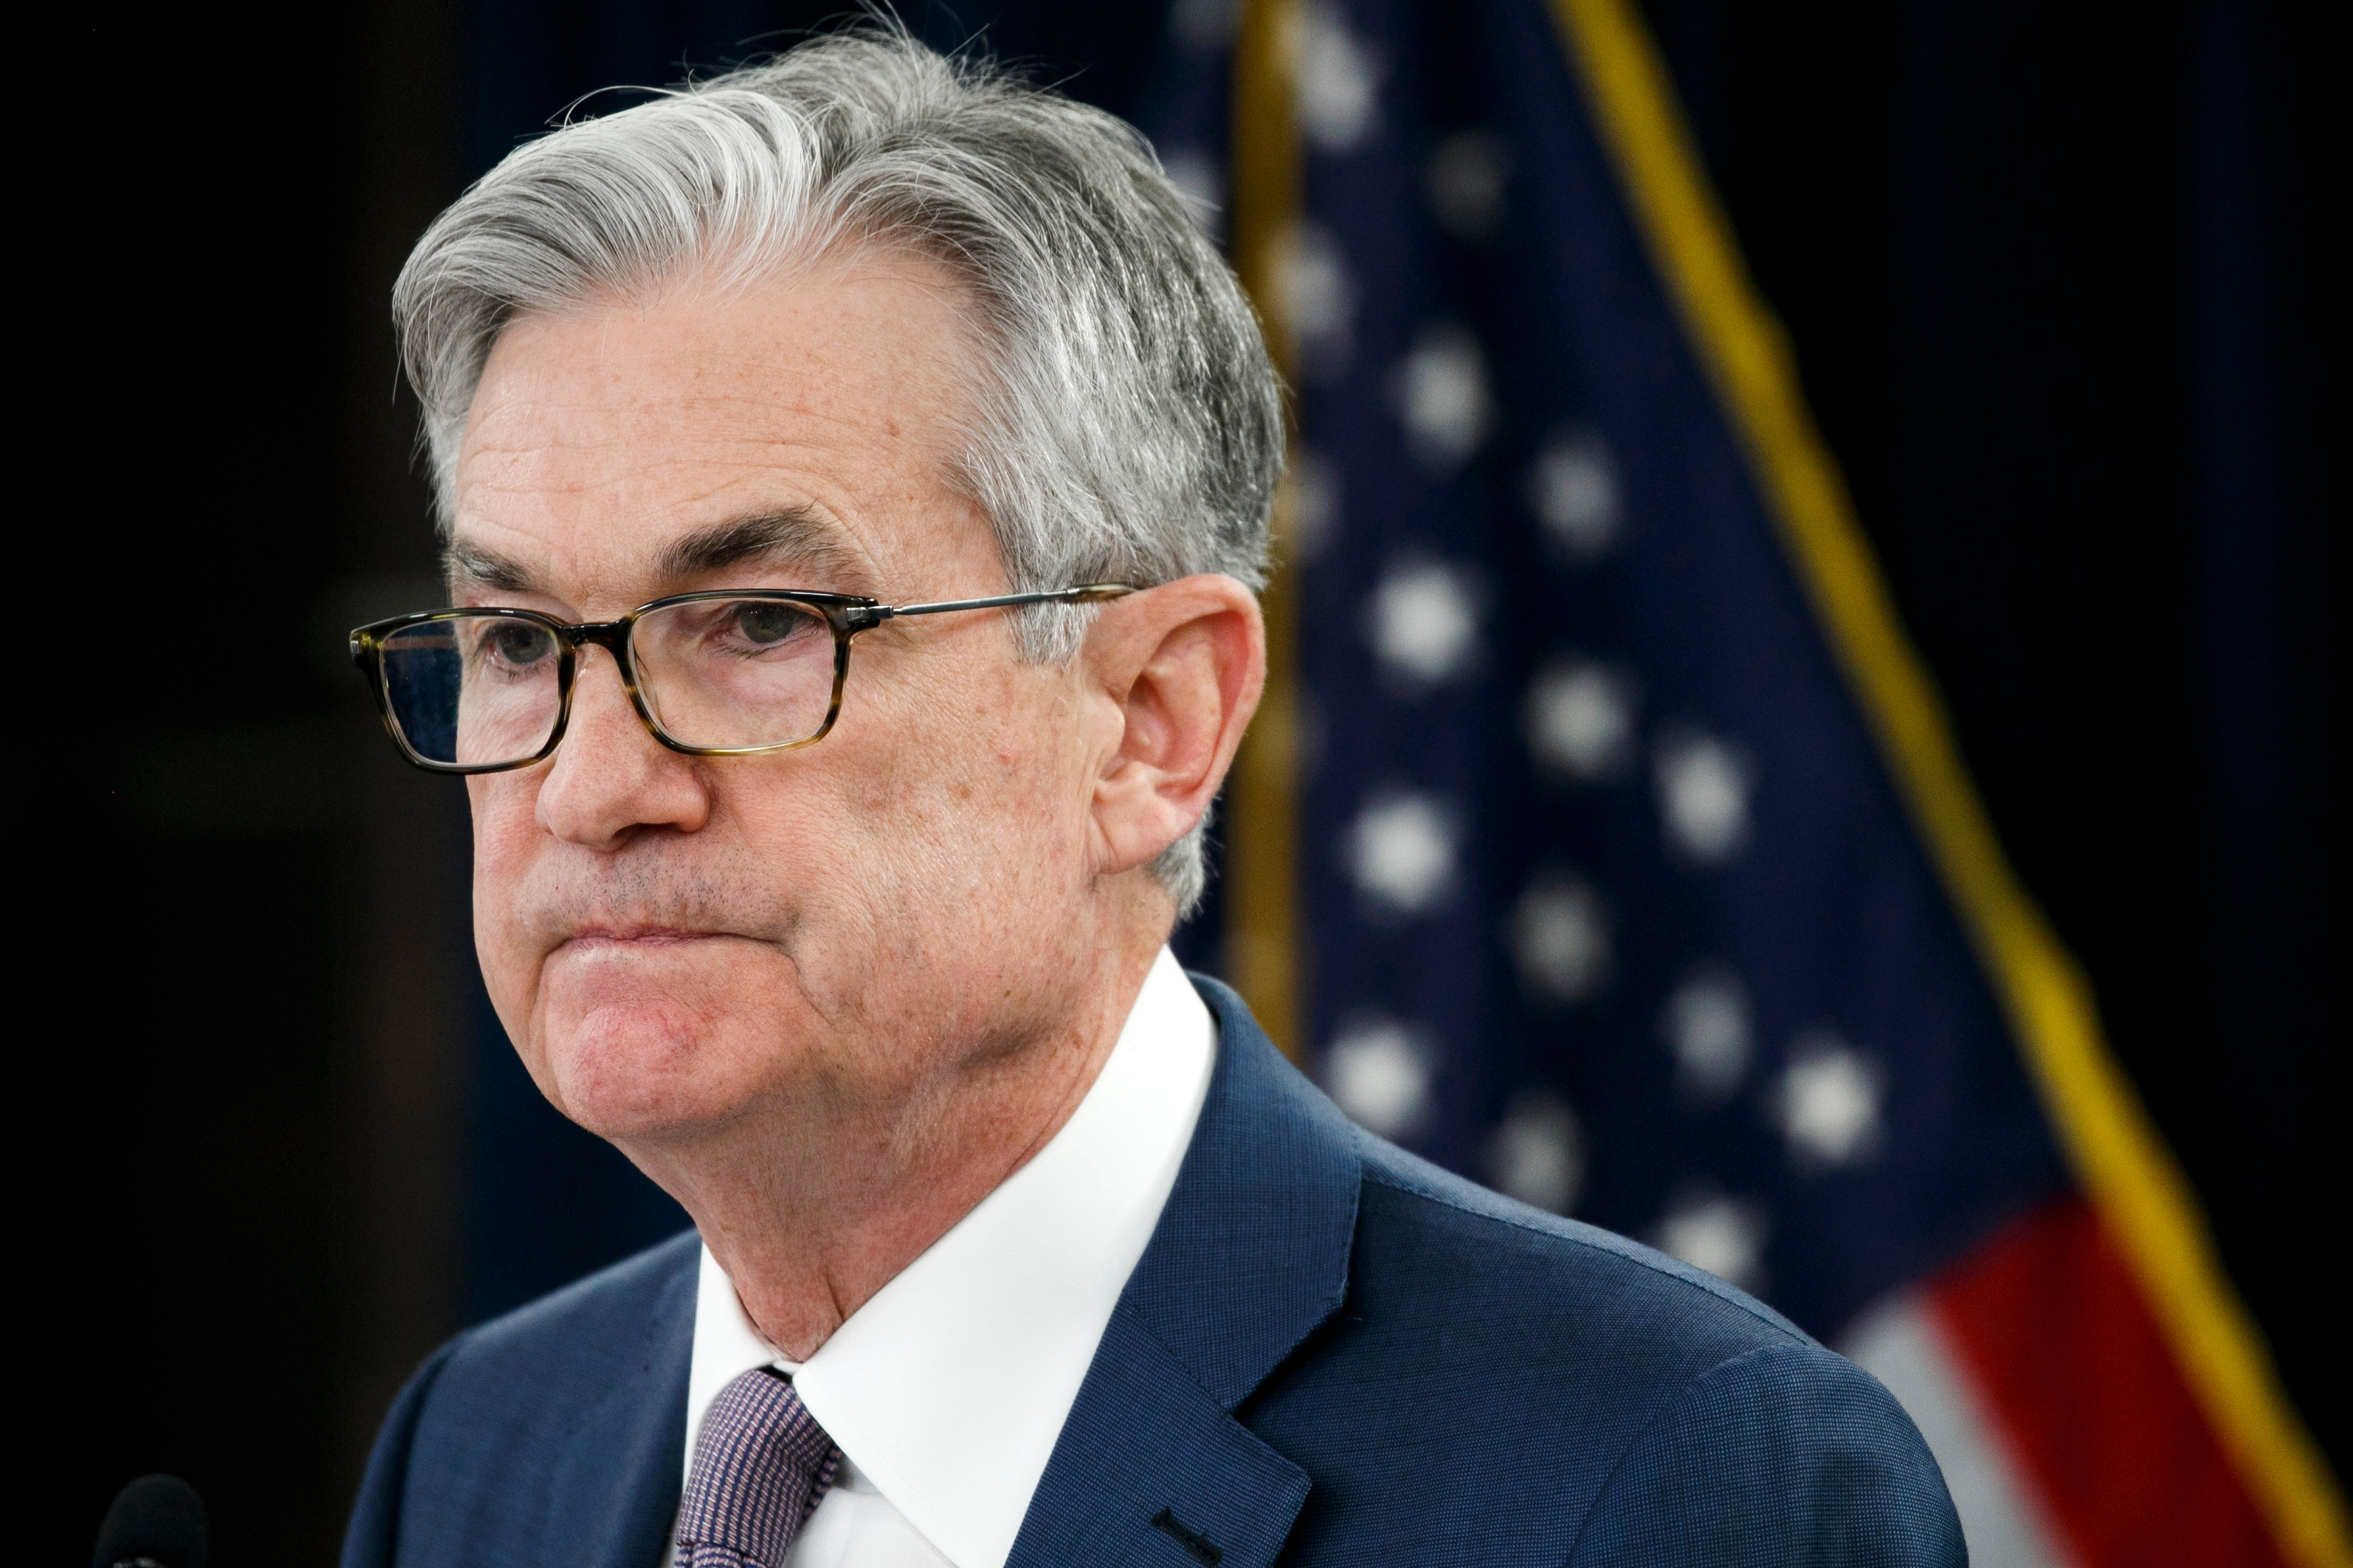 LIVE updates: Market reaction, Fed Chair Powell testifies on economy